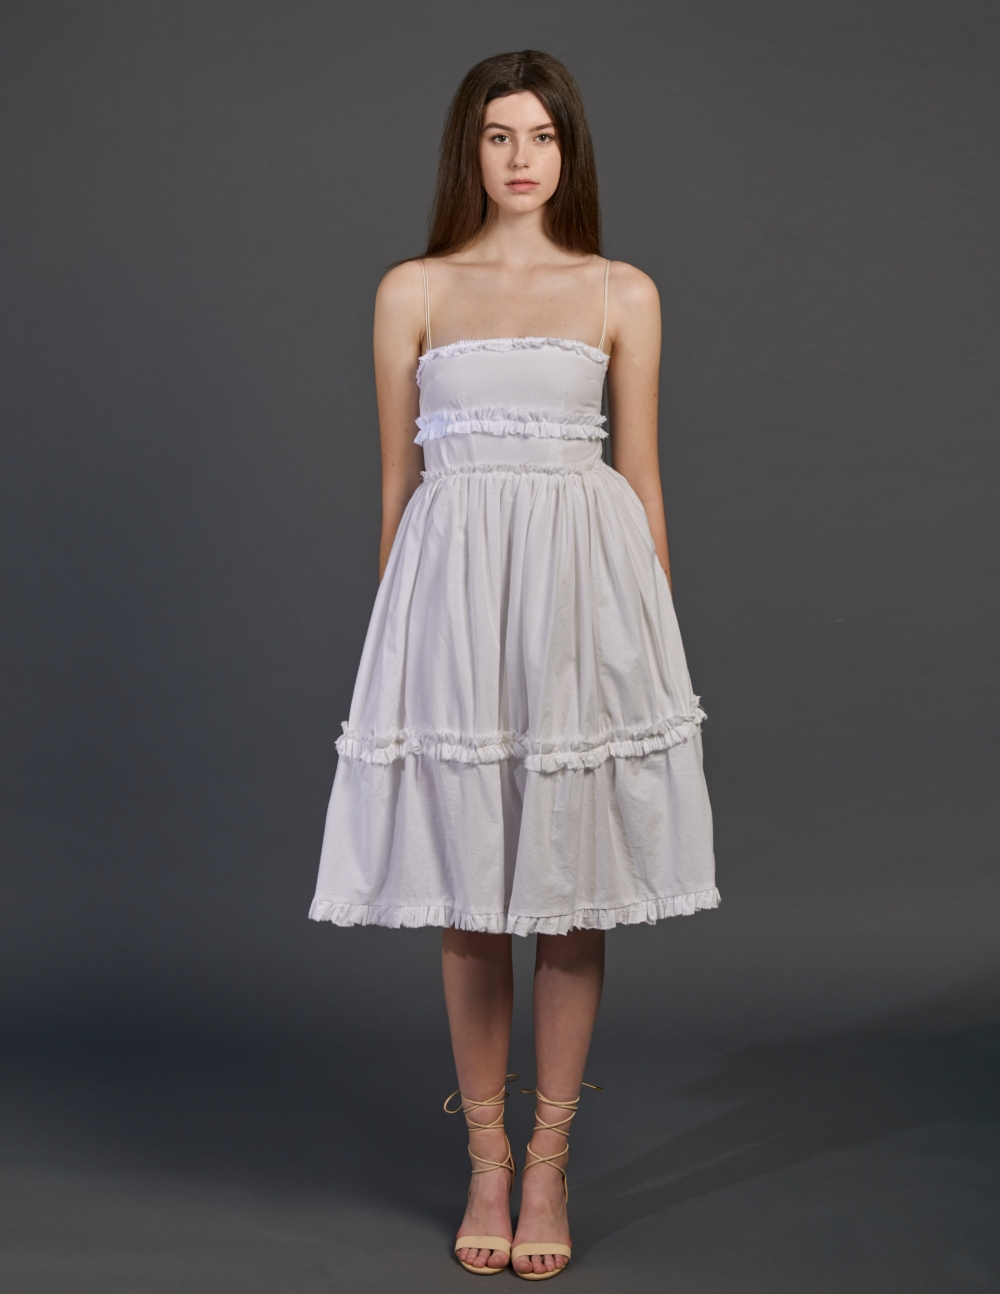 Alyssa-Nicole-Spring-2018-April-Dress-ANSP18104-1